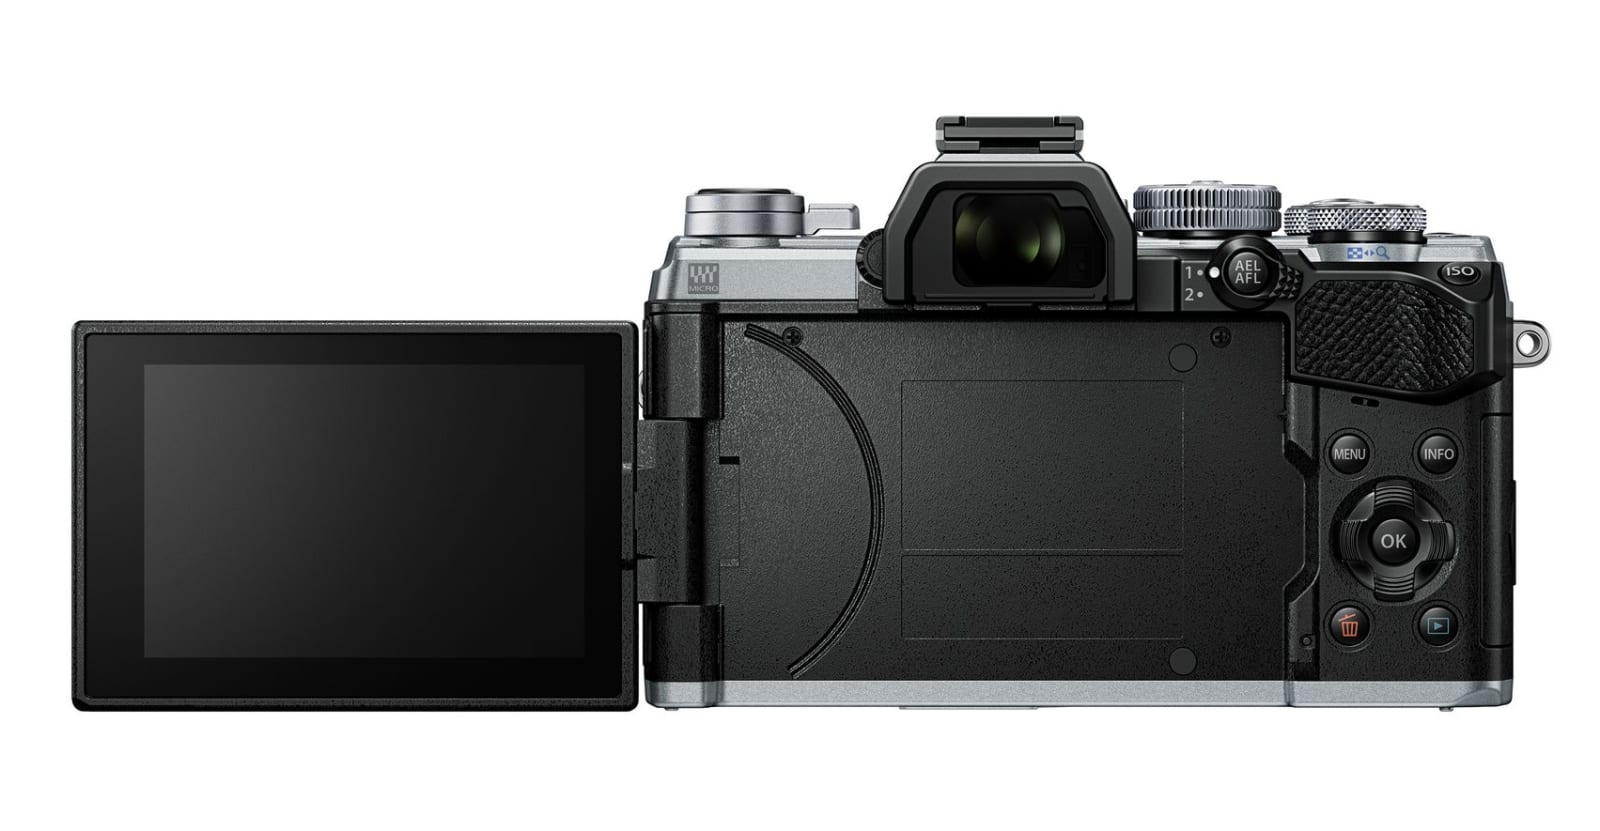 Olympus O-MD E-M5 Mark III Micro Four Thirds mirrorless camera